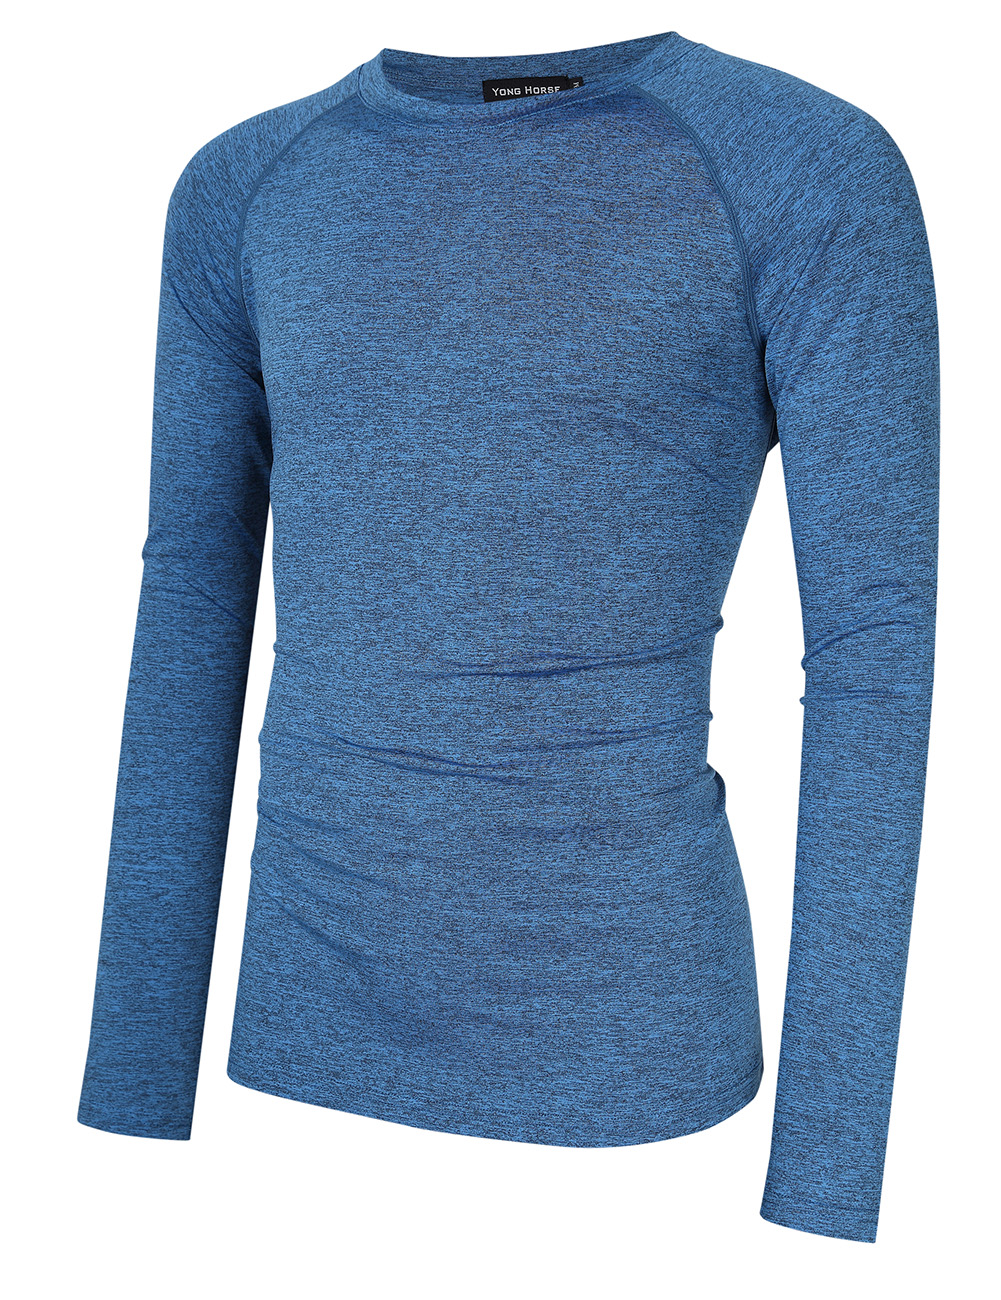 Yong Horse Men's Quick Dry Athletic Shirt